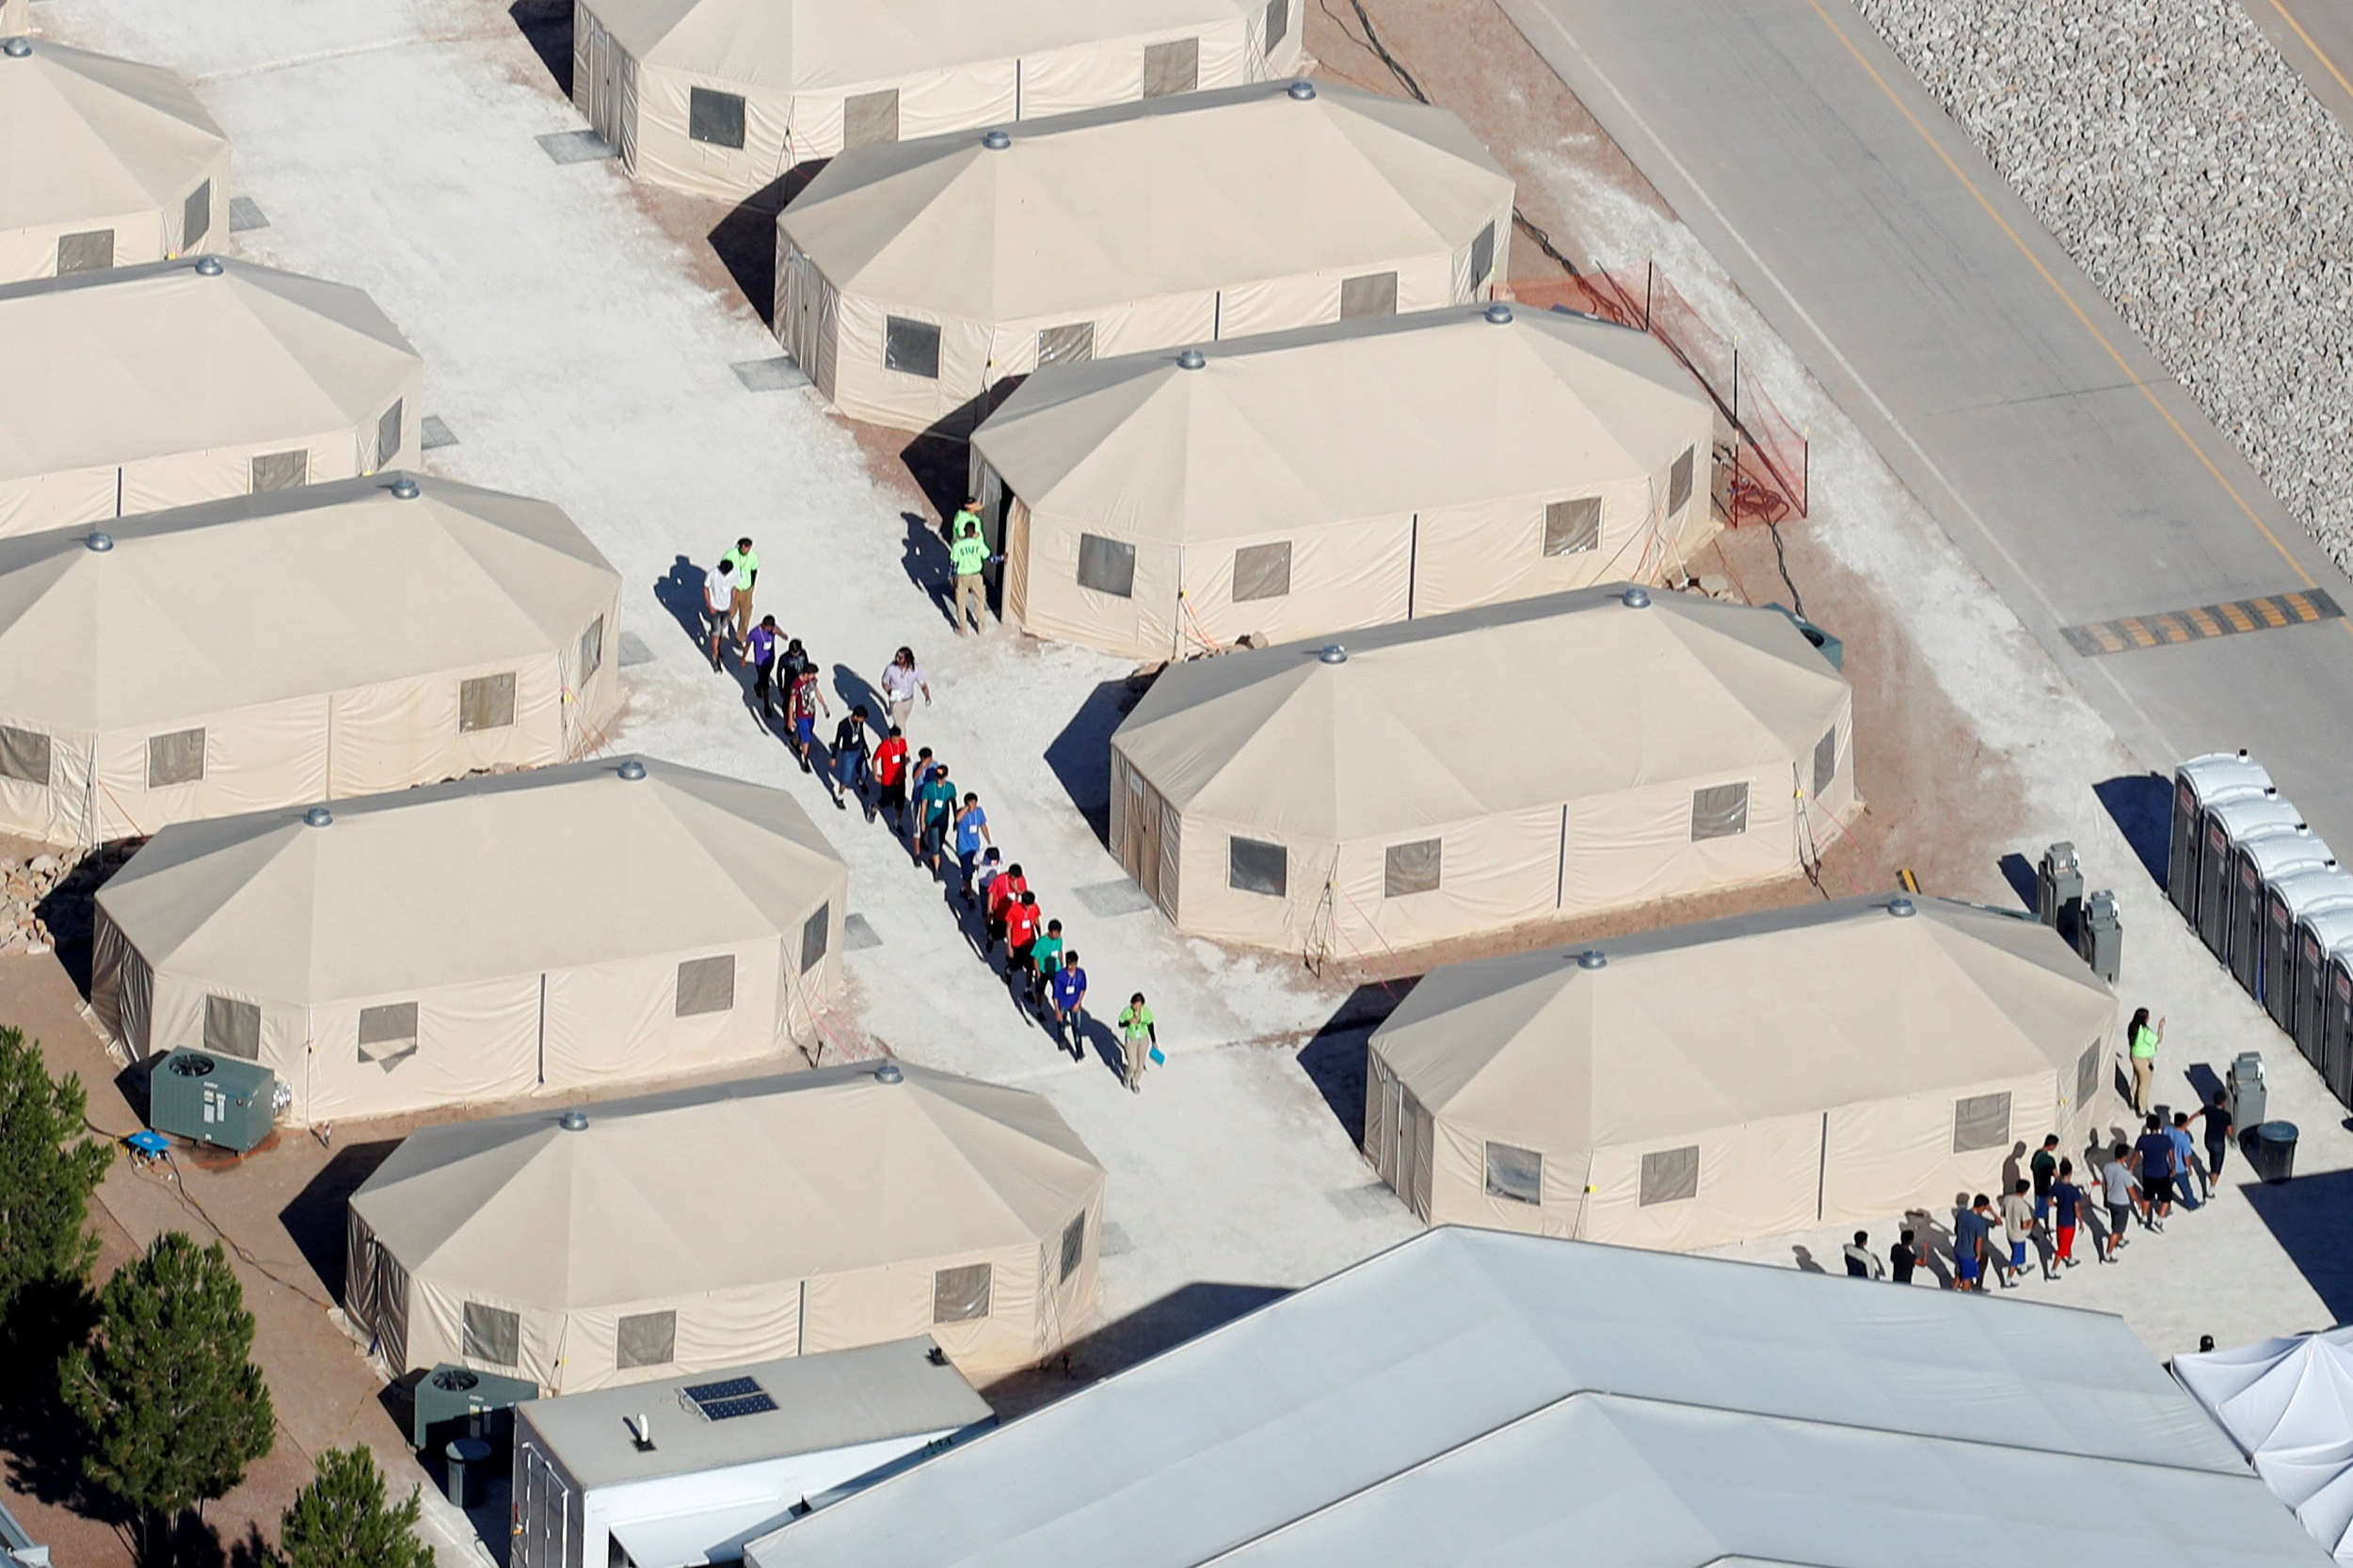 Tent cities cost Trump admin more than keeping migrant kids with parents